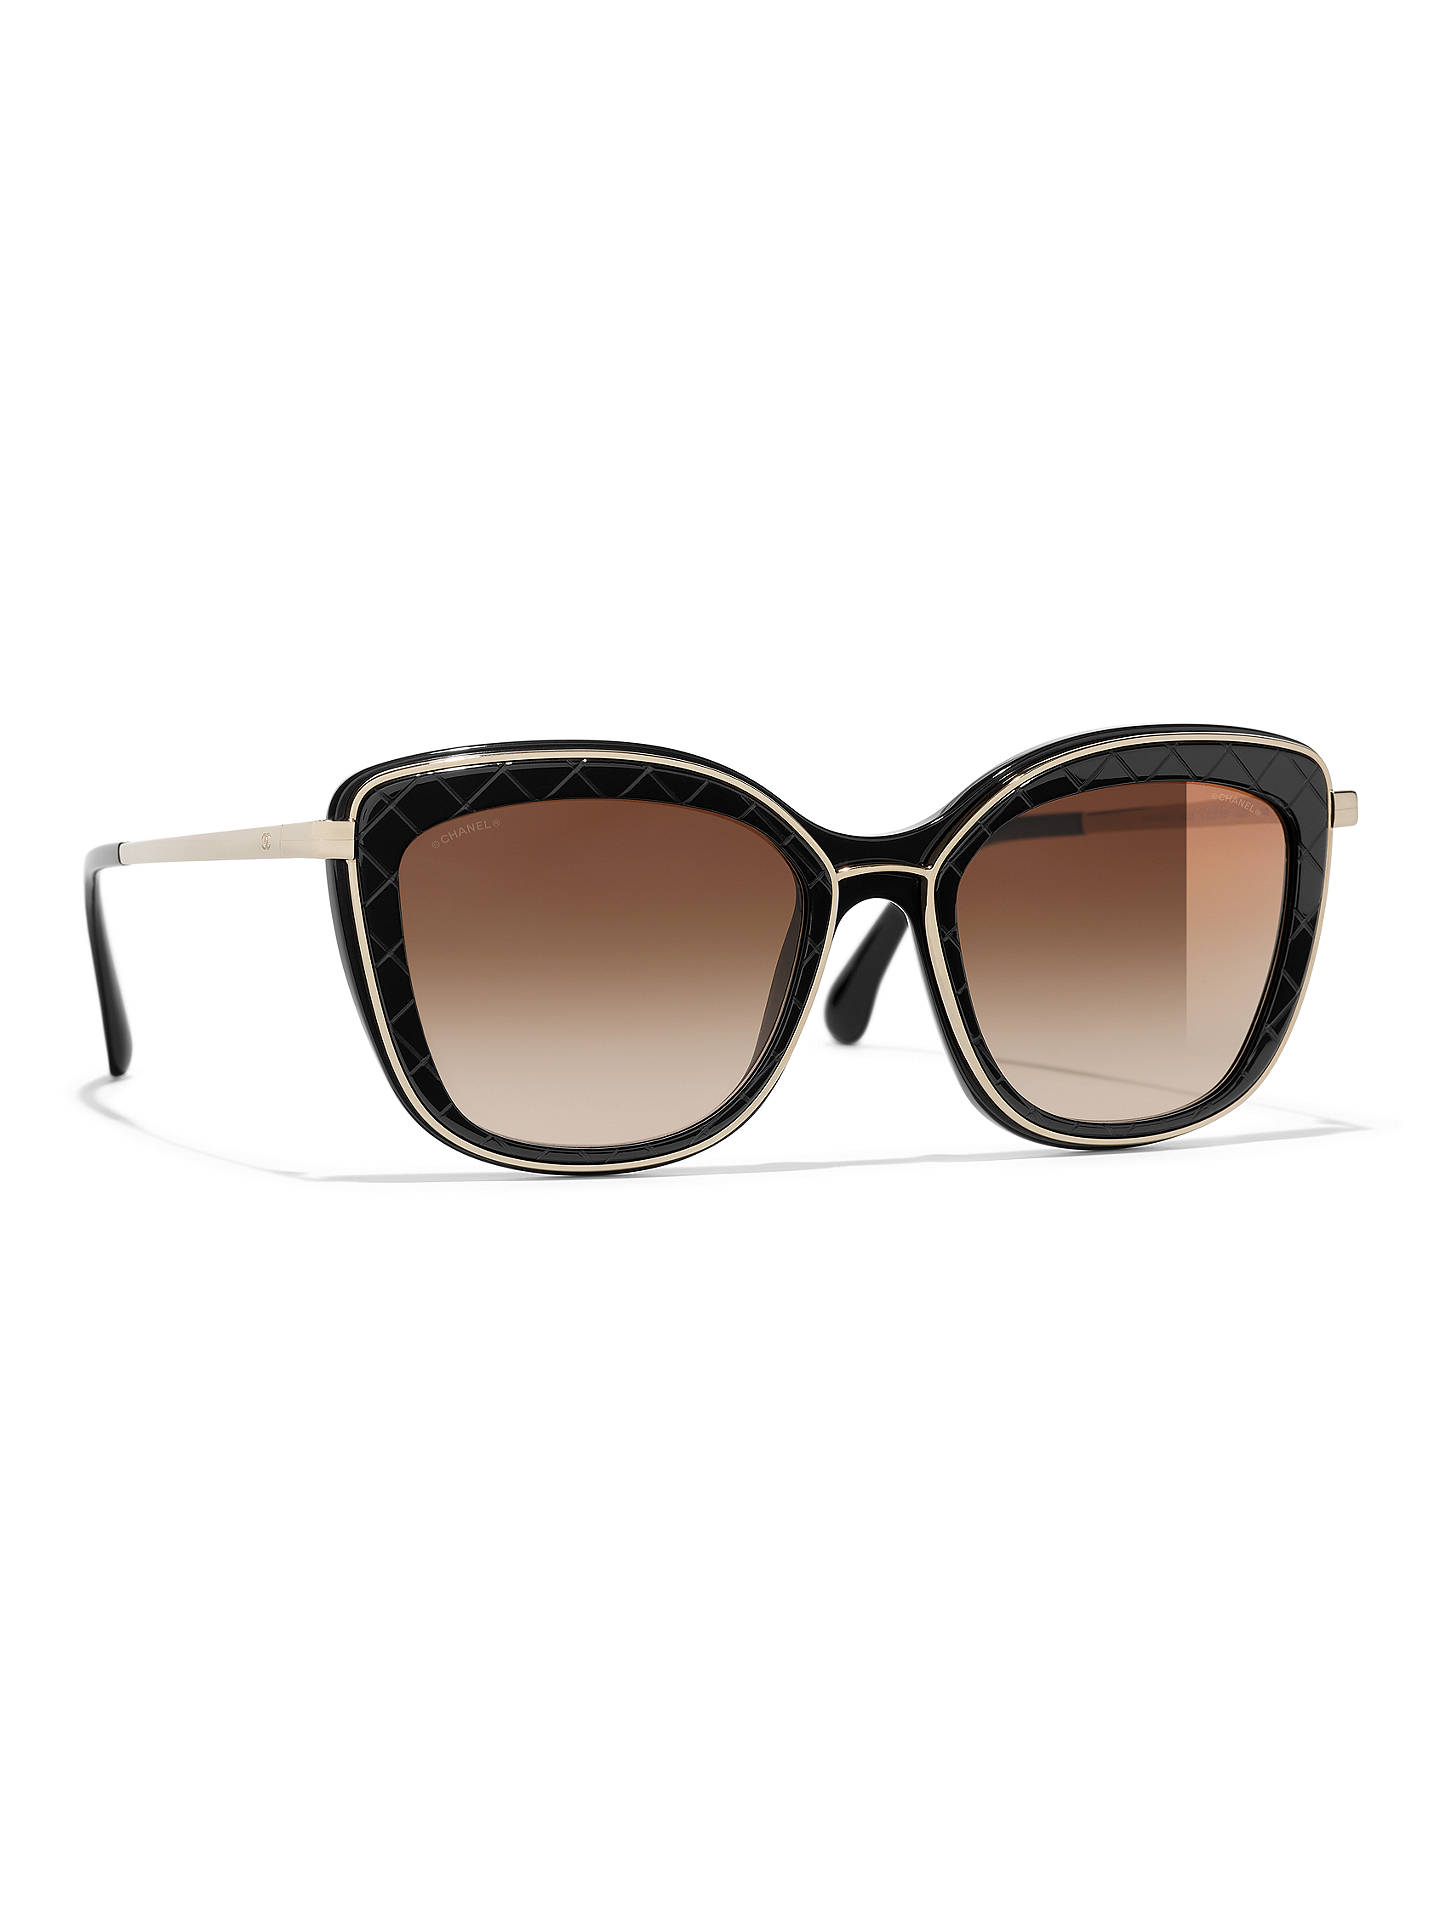 0b55196155645 Buy CHANEL Butterfly Sunglasses CH4238 Black Brown Gradient Online at  johnlewis.com ...